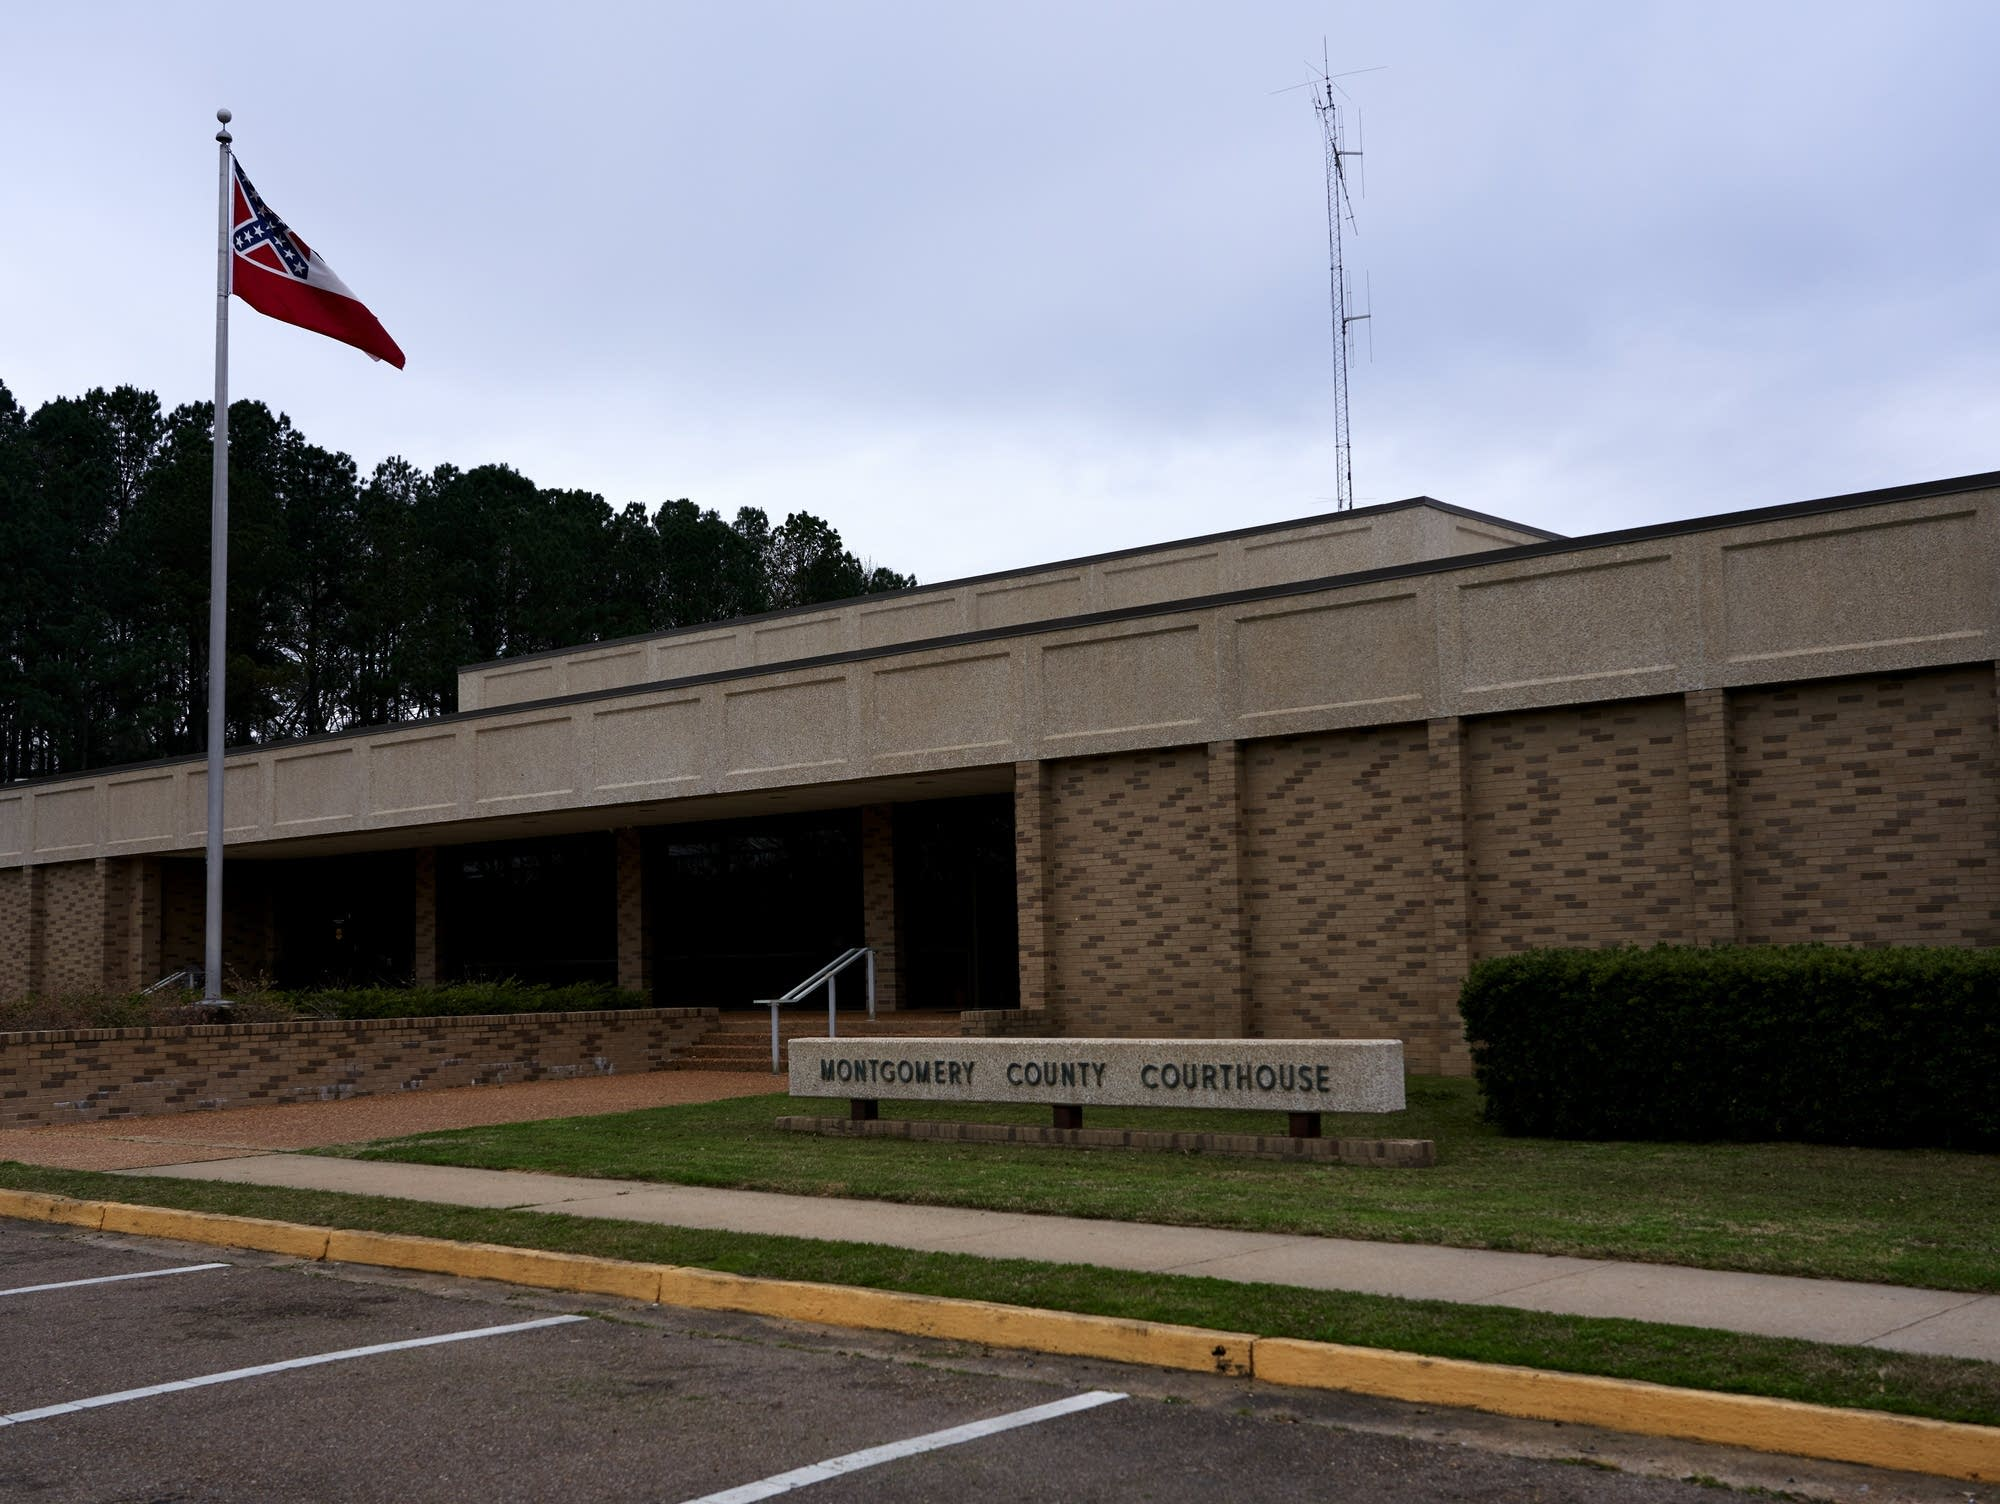 Montgomery County Courthouse in Winona, Mississippi.